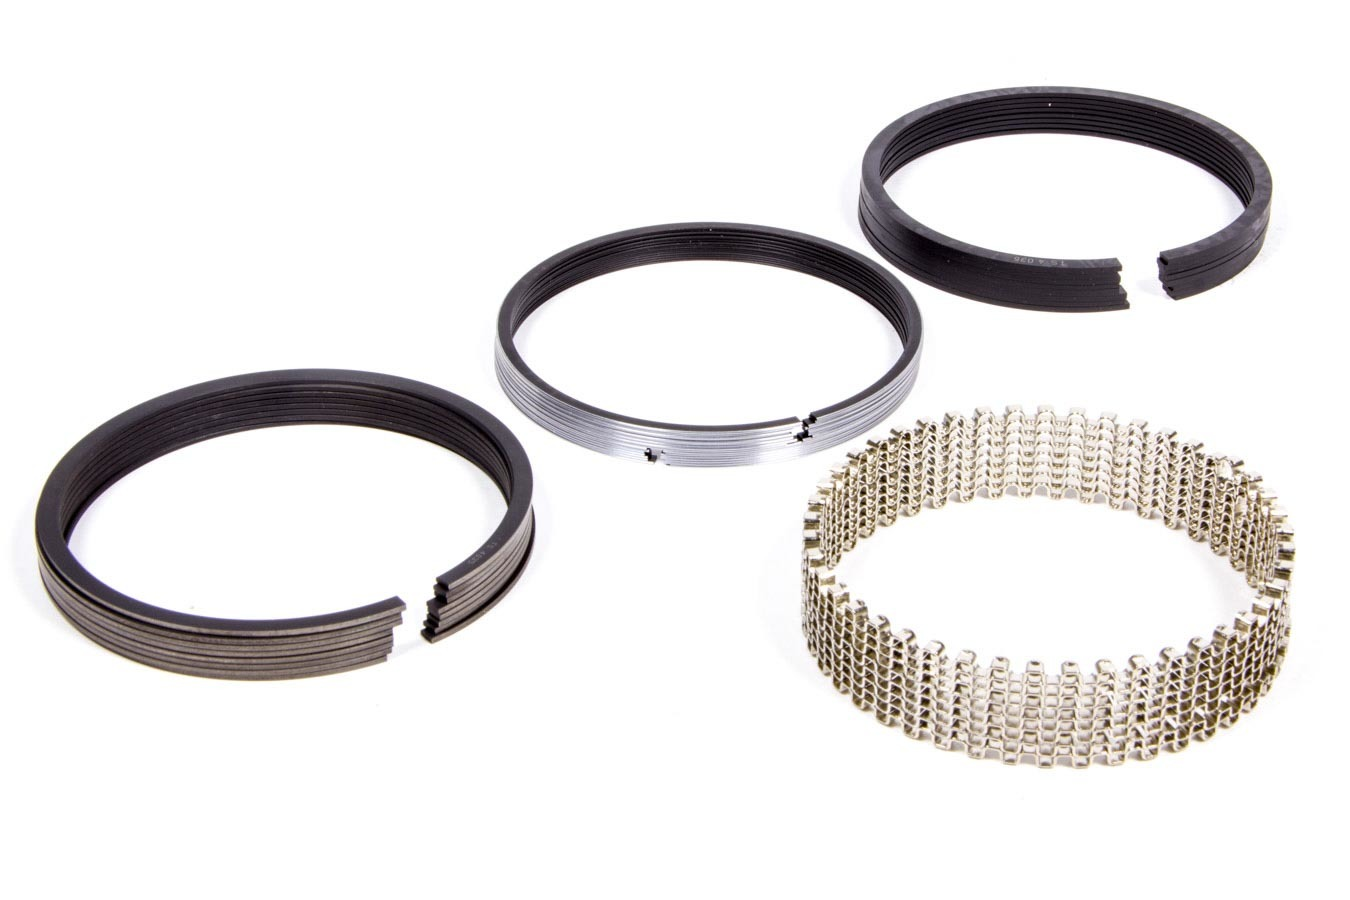 Diamond Racing Products 09024030 Piston Rings, Pro-Select, 4.030 in Bore, File Fit, 1/16 x 1/16 x 3/16 in Thick, Standard Tension, Plasma Moly, 8 Cylinder, Kit